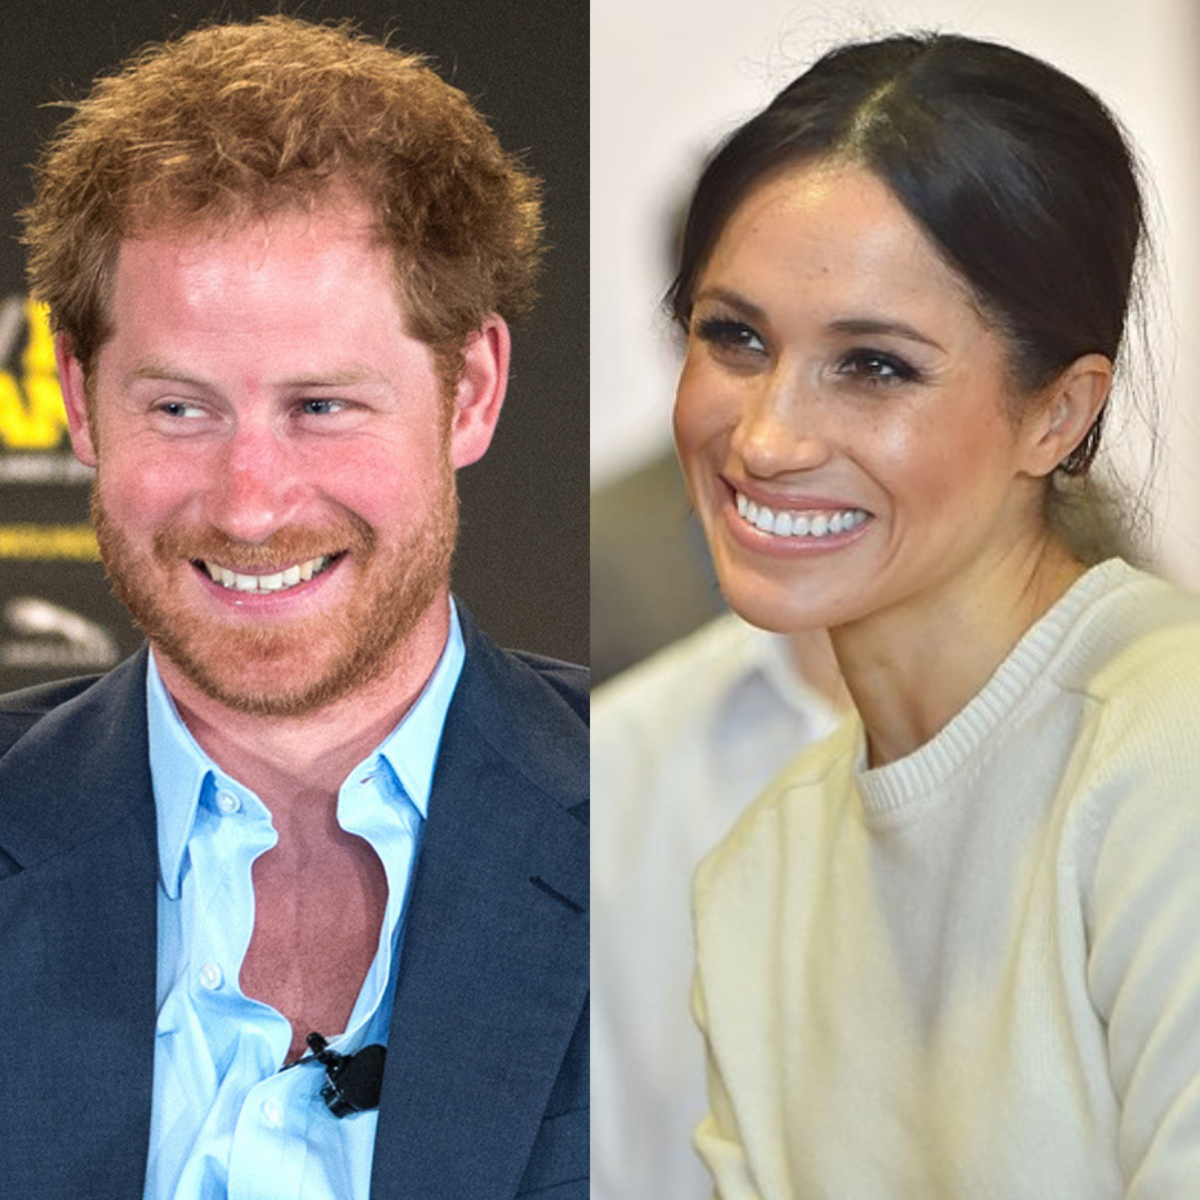 Prince Harry and Meghan Markle have similar features.